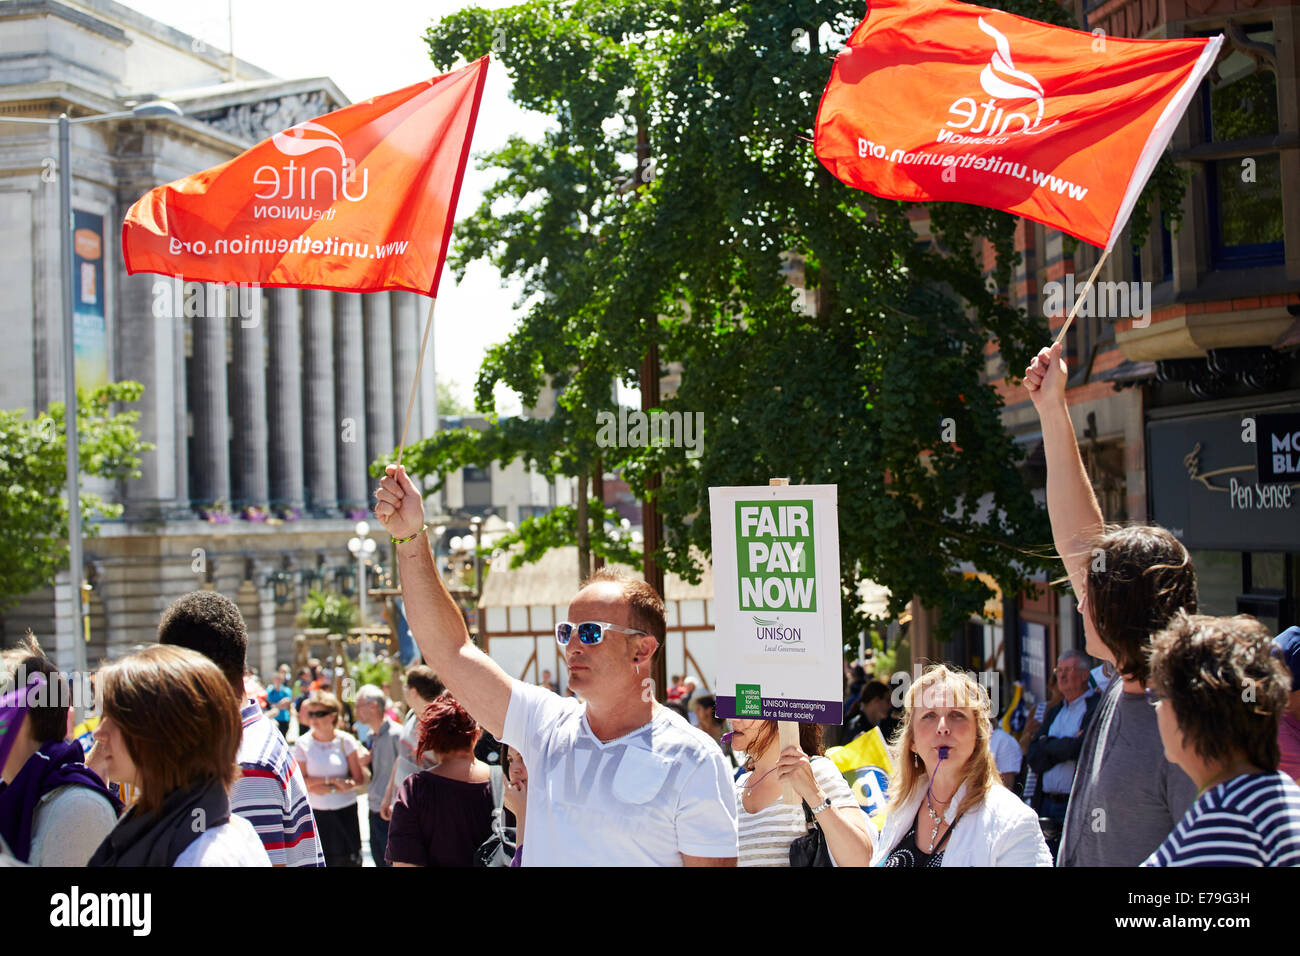 Protest rally in Old Market Square Nottingham about low pay for public sector workers - Stock Image